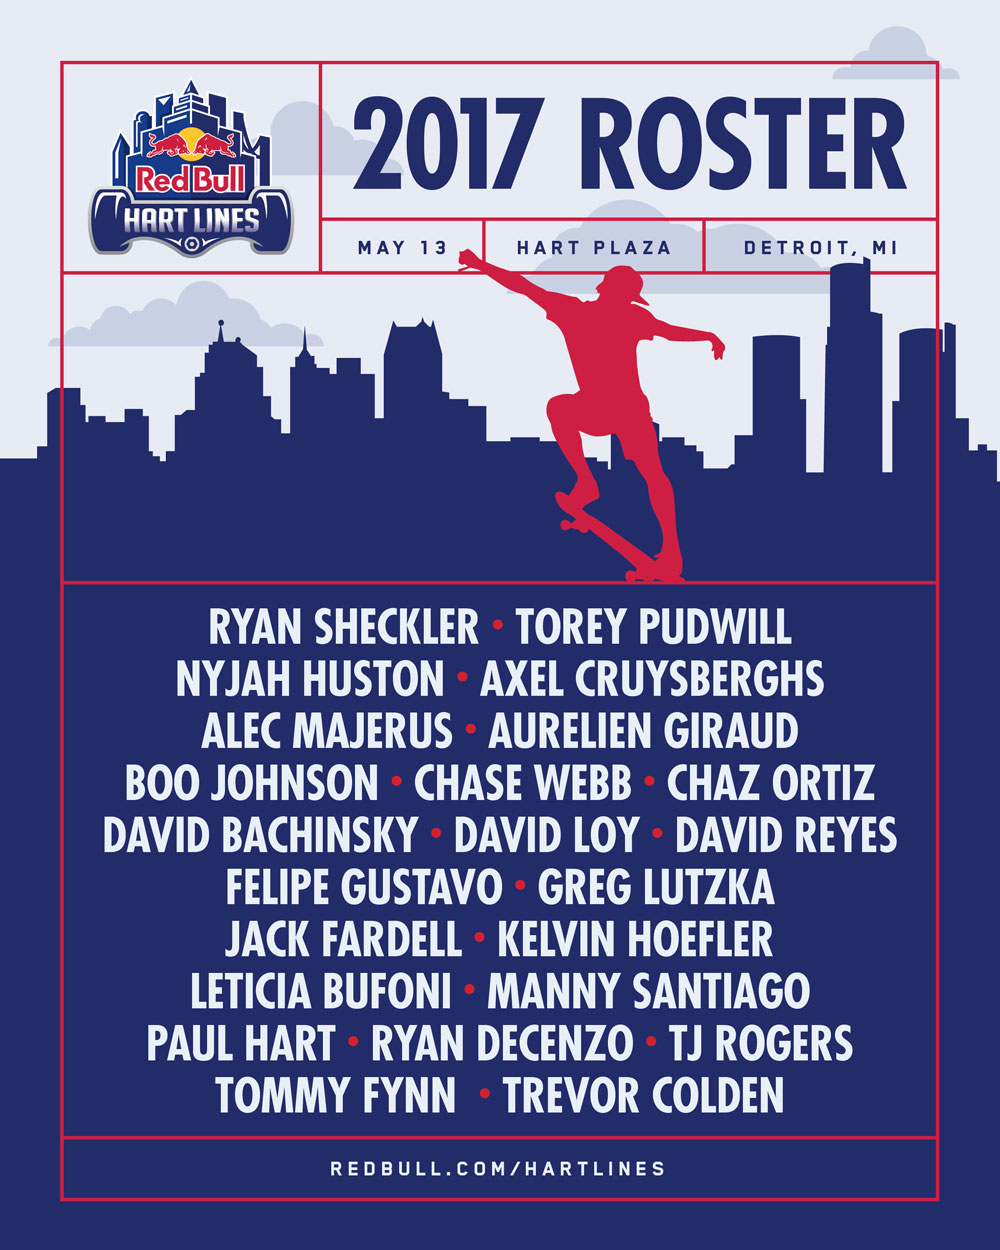 Hart Lines 2017 Roster